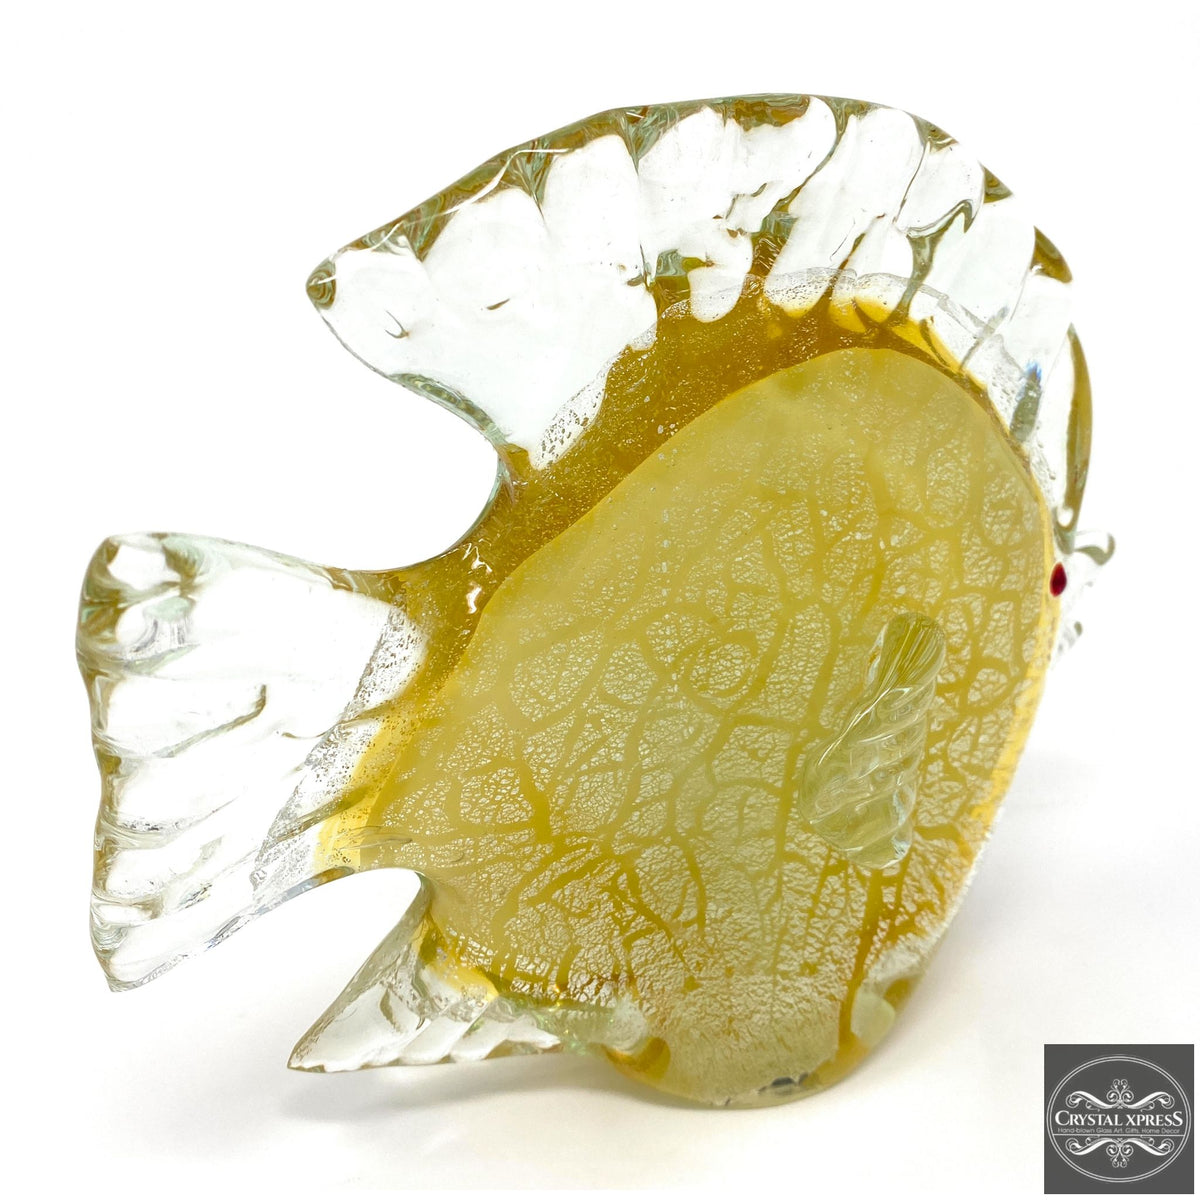 "New 8"" Hand Blown Glass Yellow Fish with Red Eyes Sculpture Figurine Art DecorCrystal Xpress"